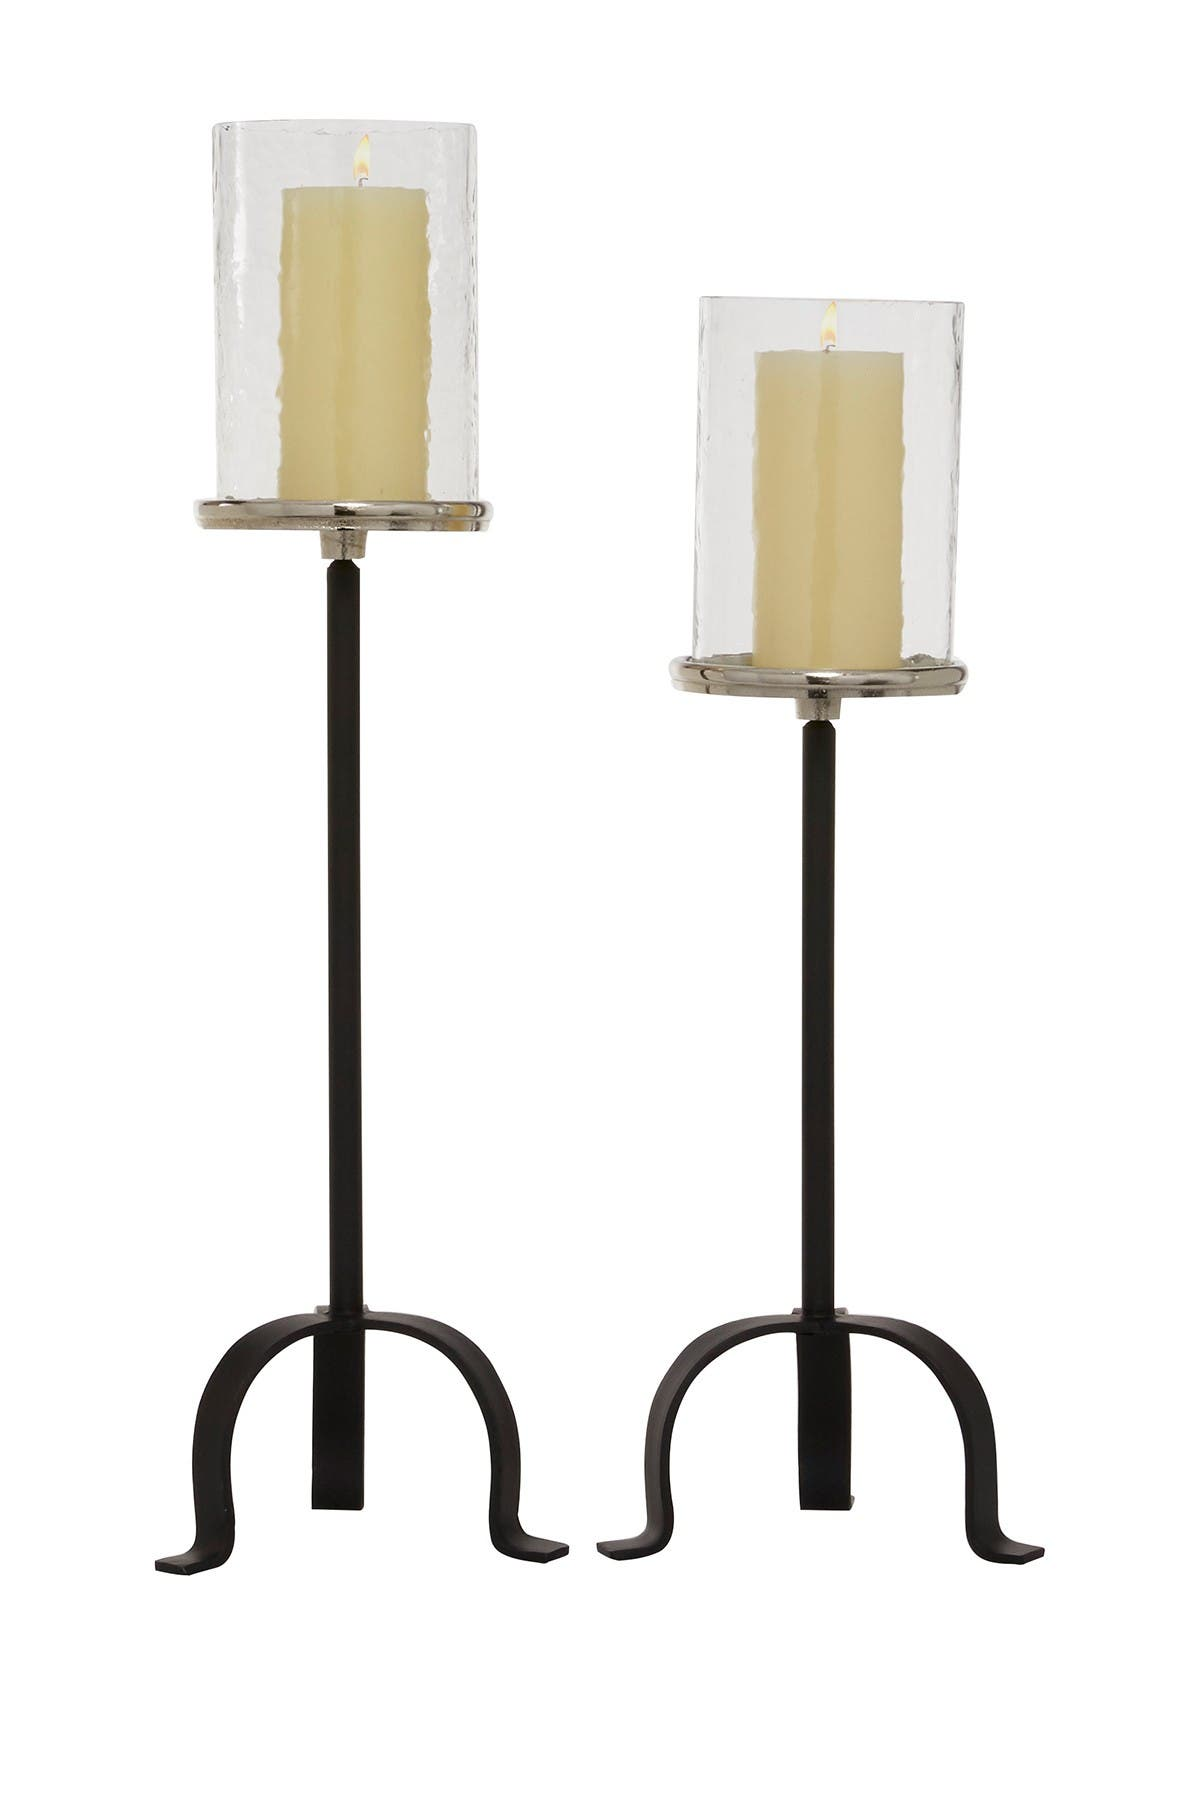 Willow Row Tall Modern Candle Holders With Glass Top And Black Metal Tripod Base Set Of 2 23 H 26 H Nordstrom Rack